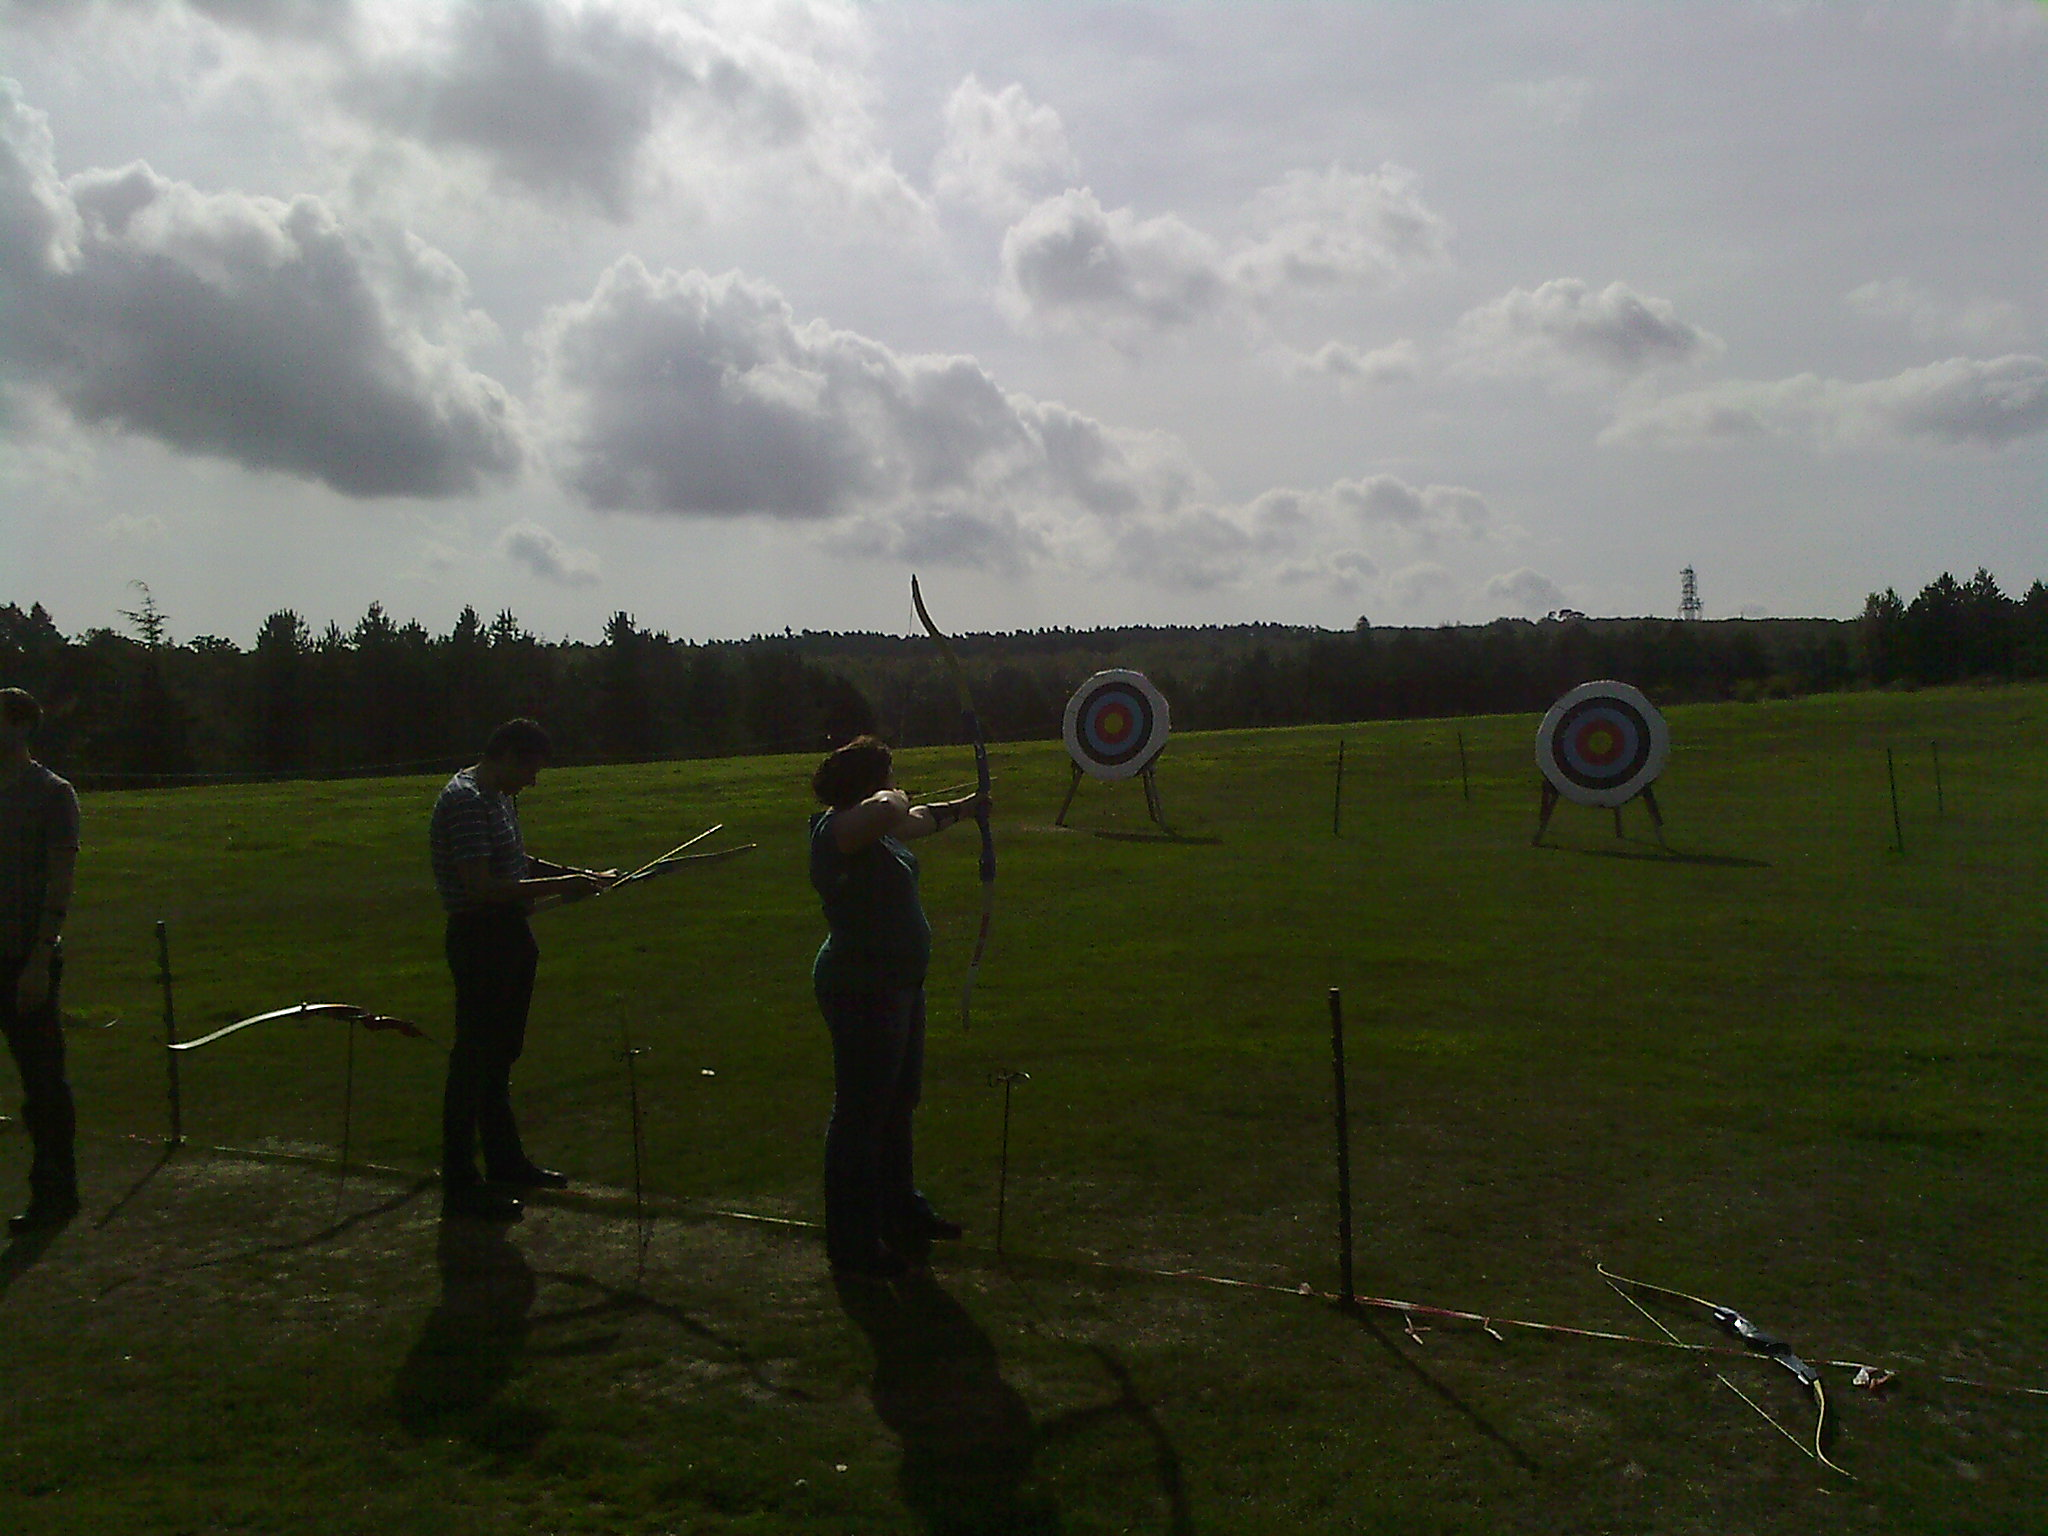 Great weather for Archery!